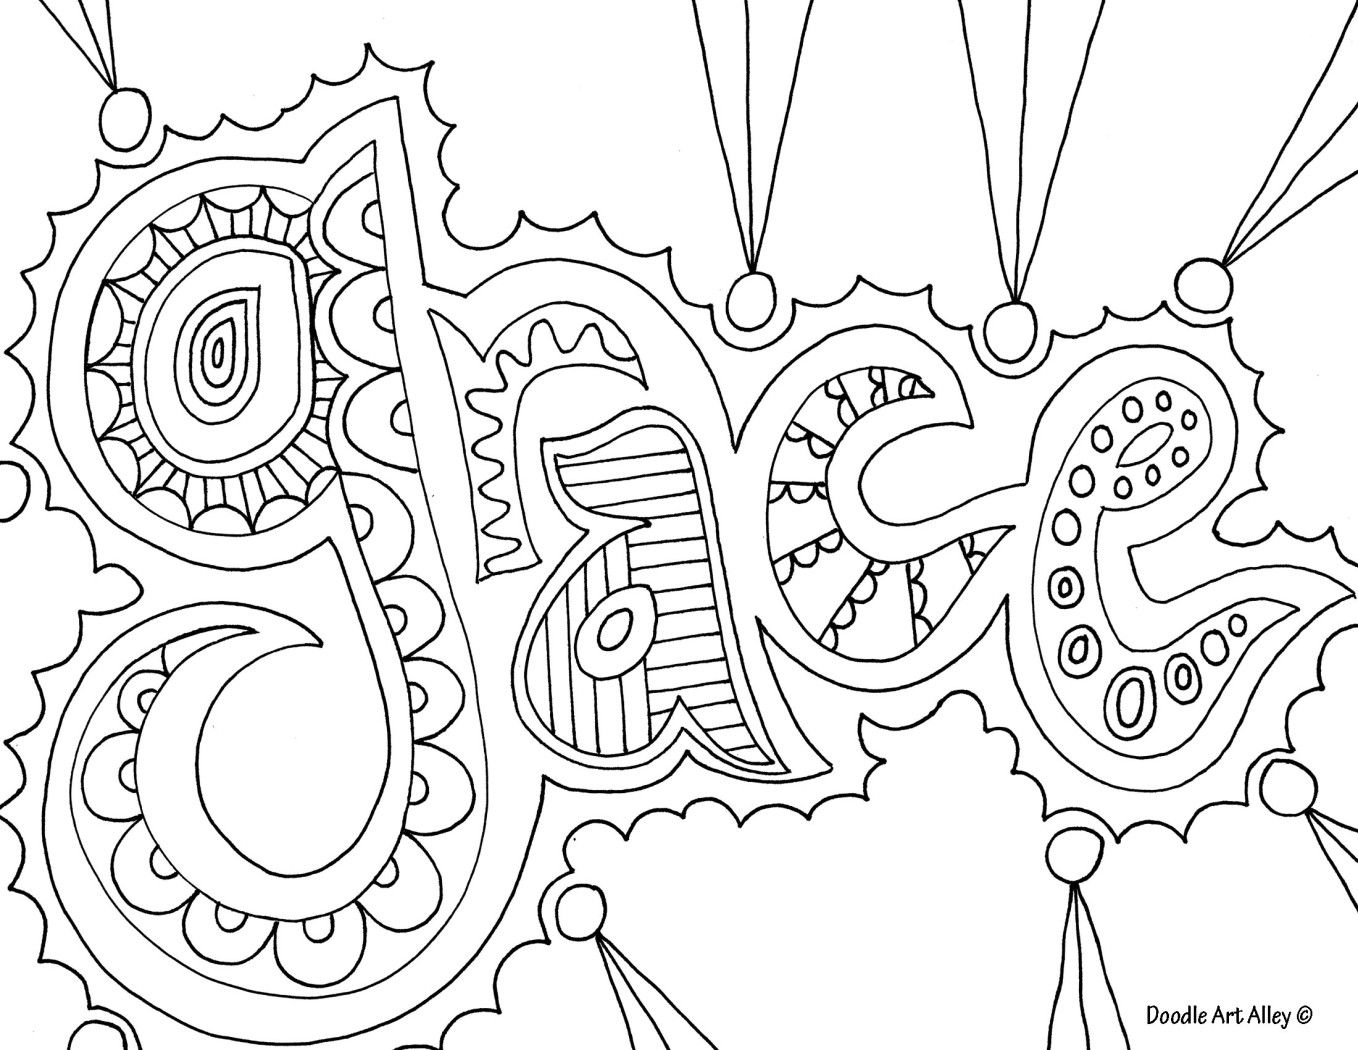 Doodle art grace nice coloring page for older kids for Coloring pages names